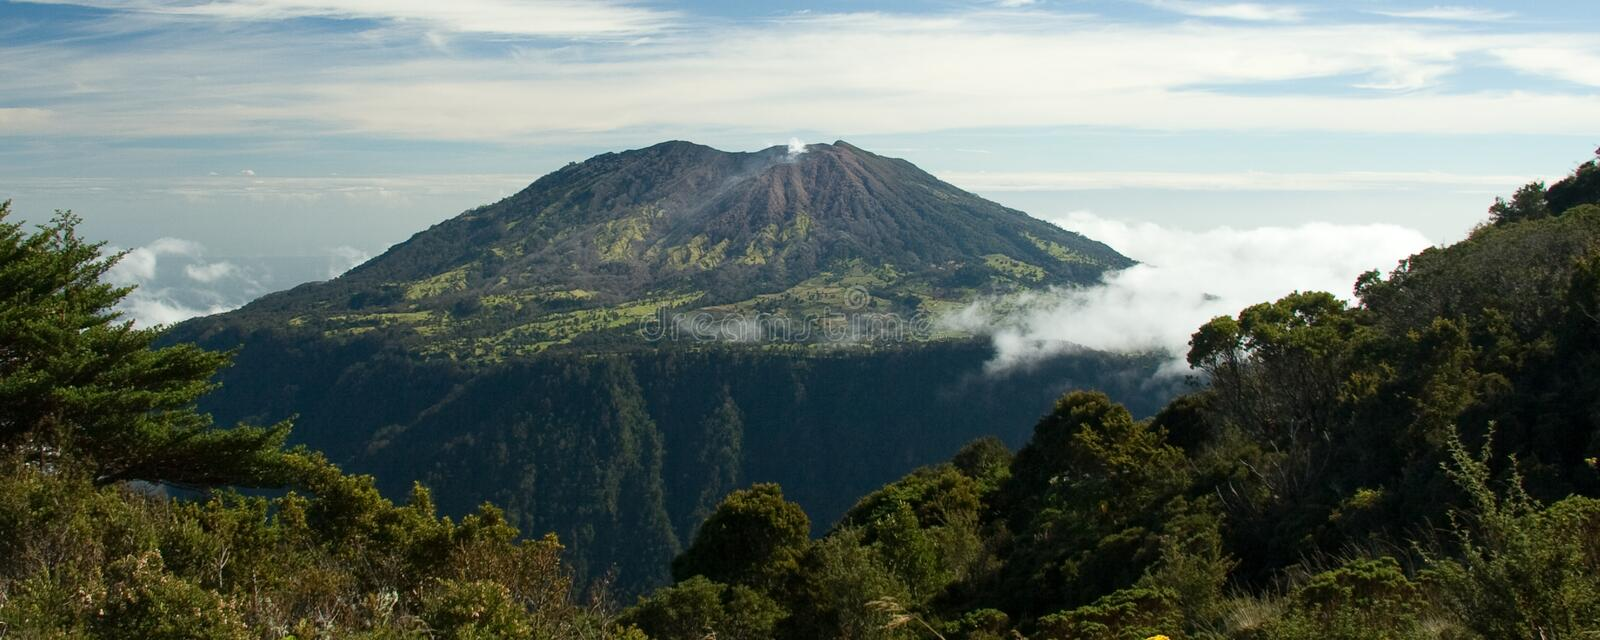 Volcan de Turrialba photo stock